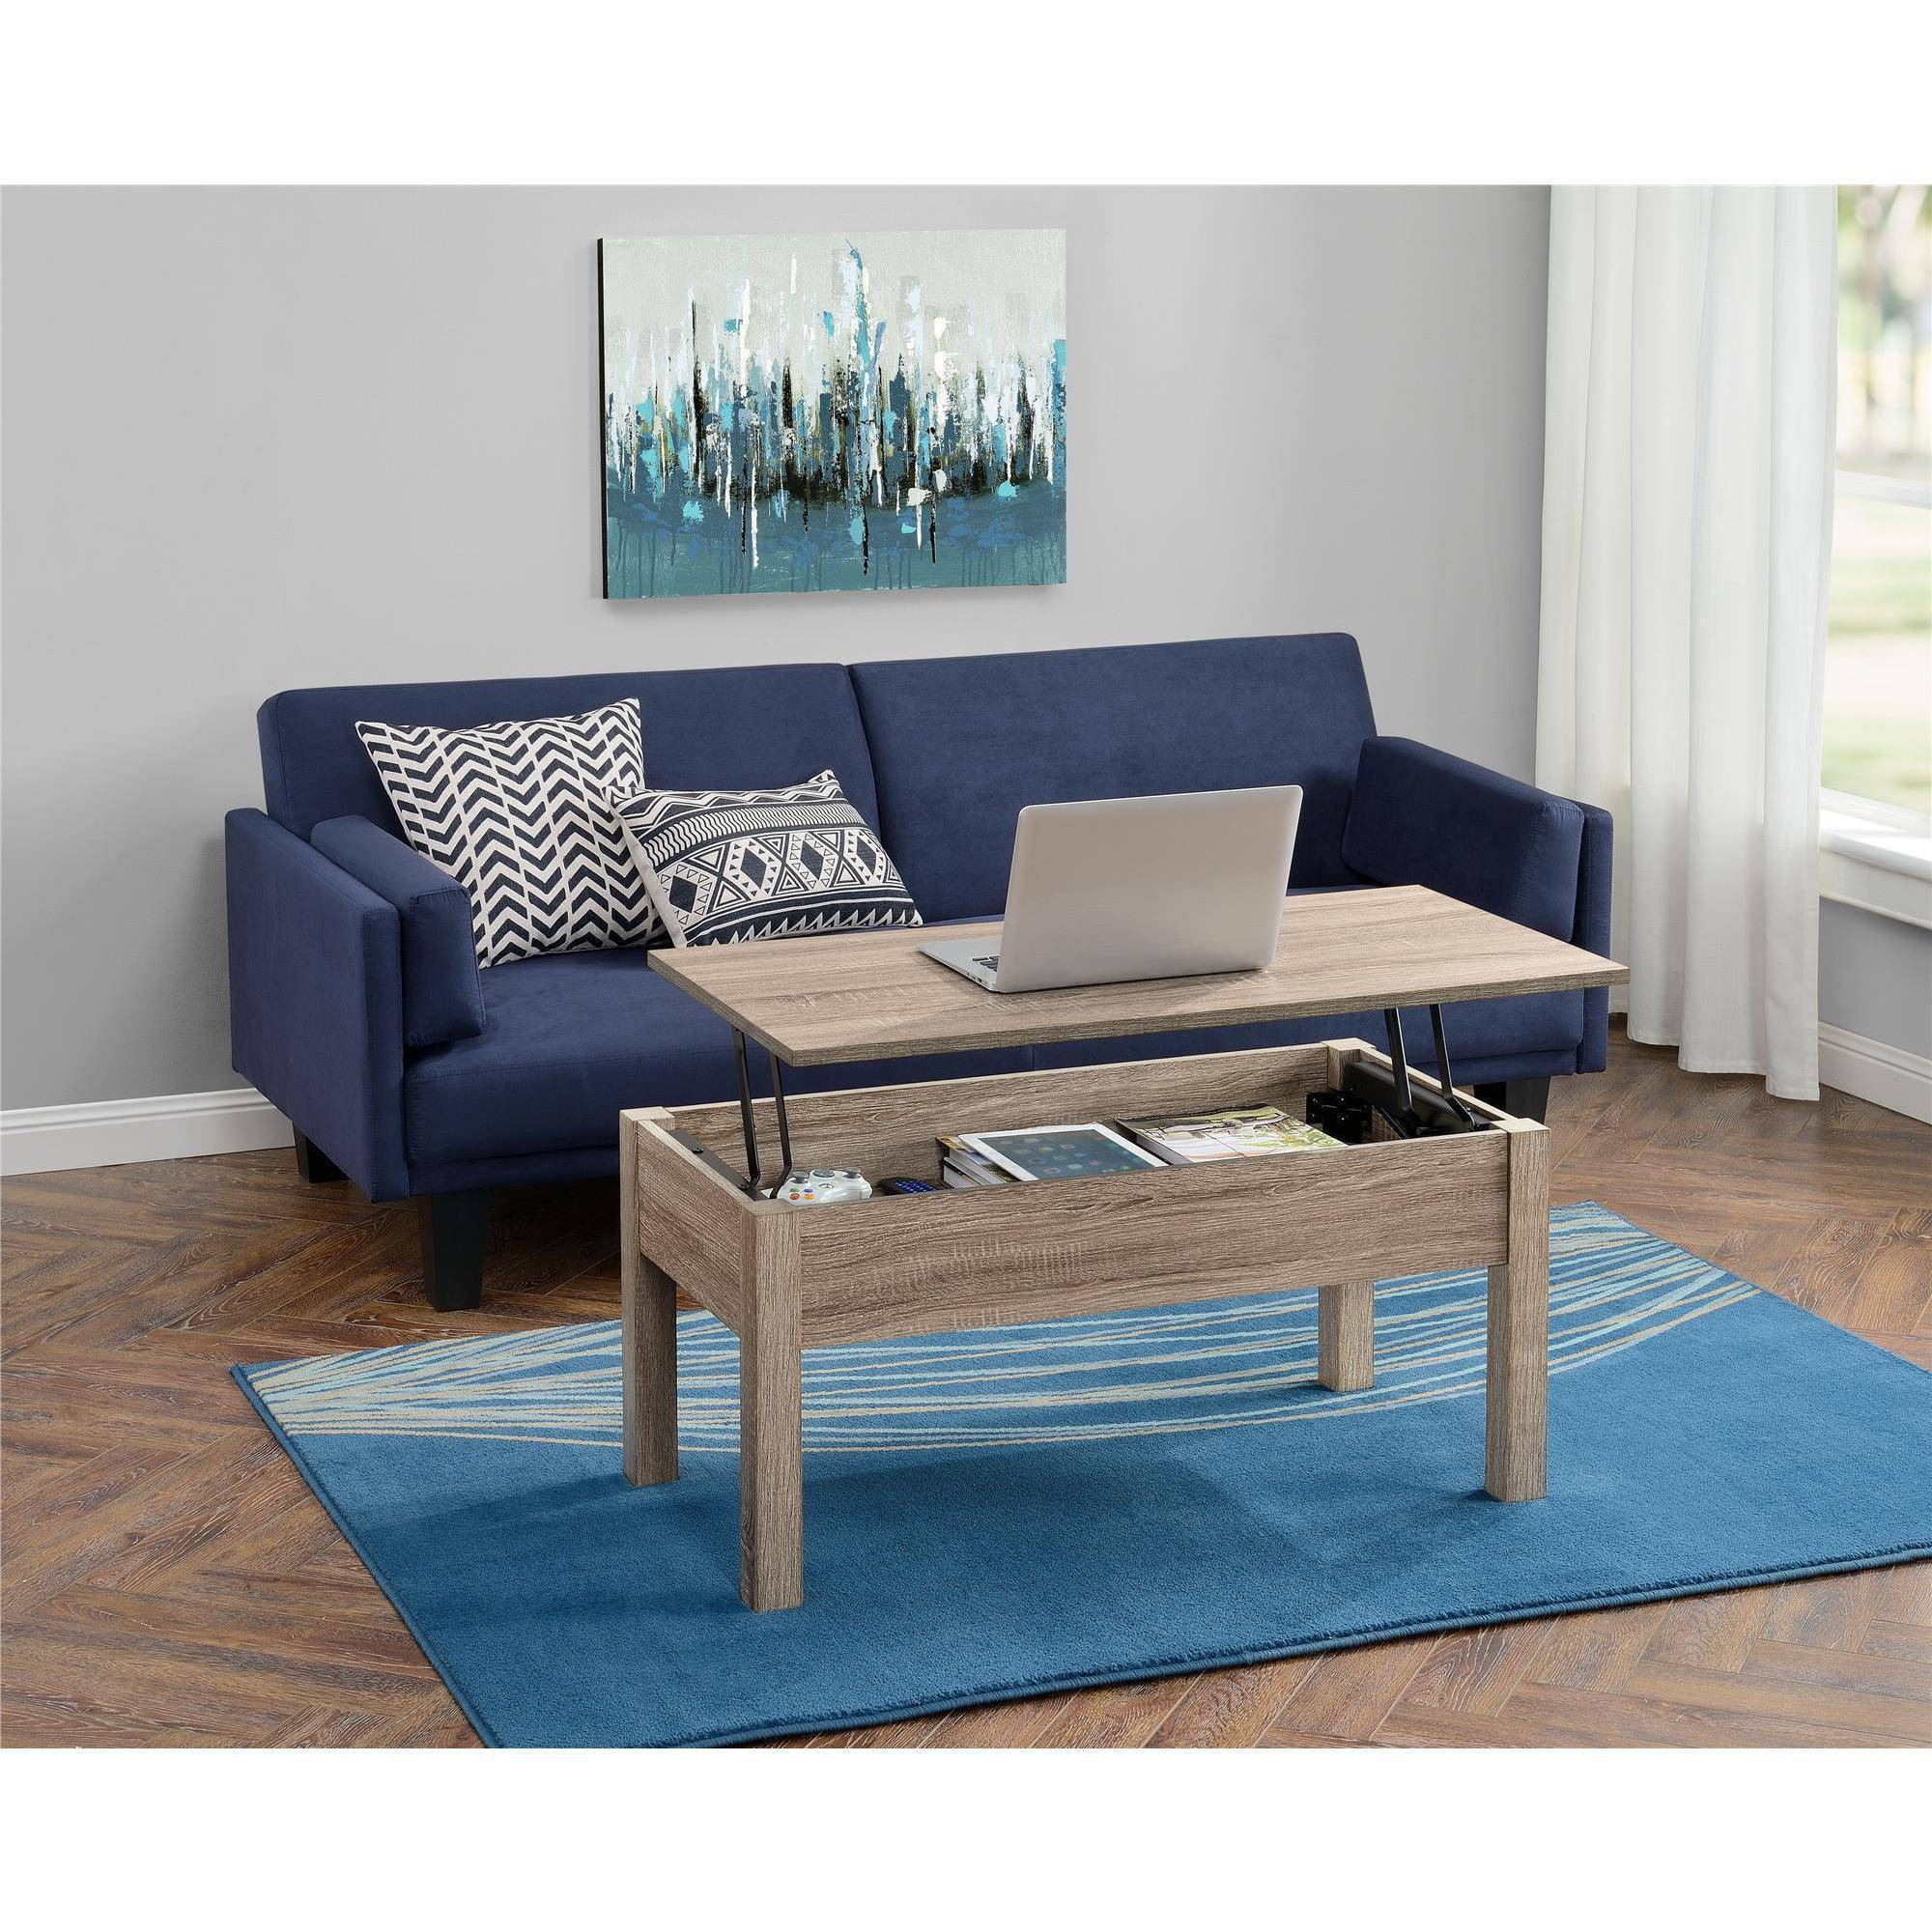 Mainstays Lift Top Coffee Table, Multiple Colors – Walmart Inside Coffee Tables Extendable Top (View 17 of 30)